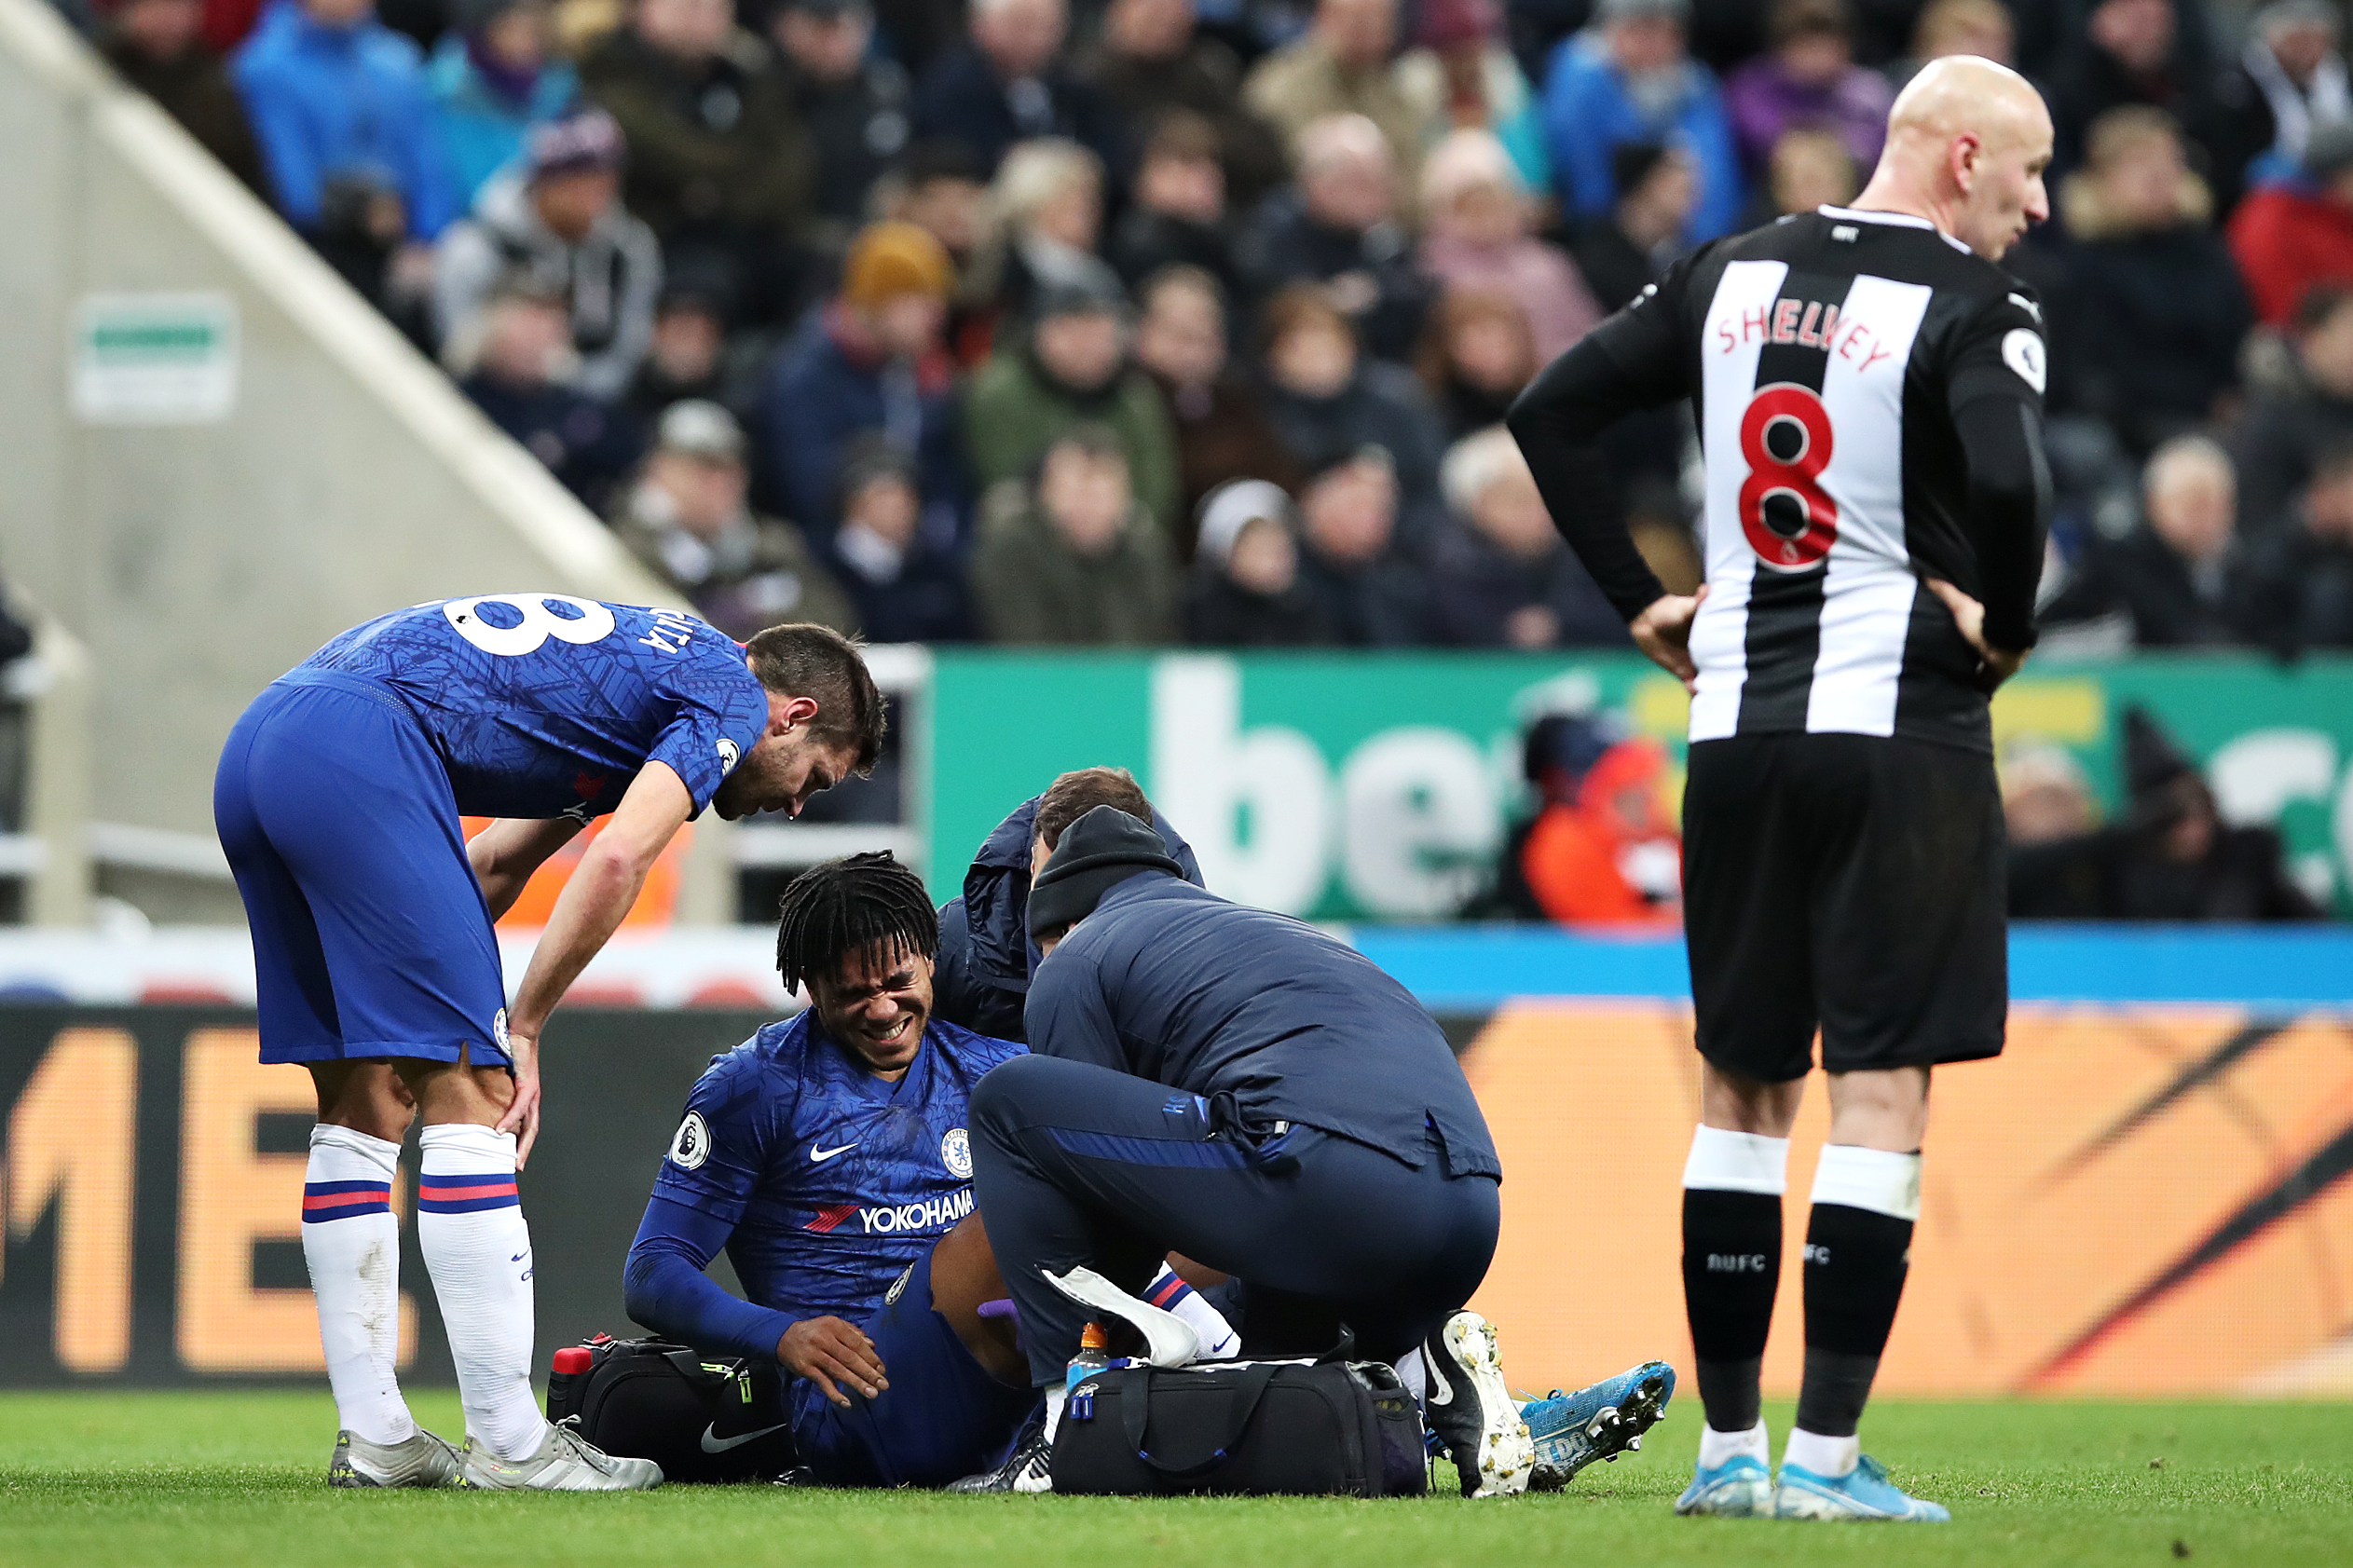 Newcastle United 1-0 Chelsea, Player Ratings: Reece James the only good thing and even he got injured